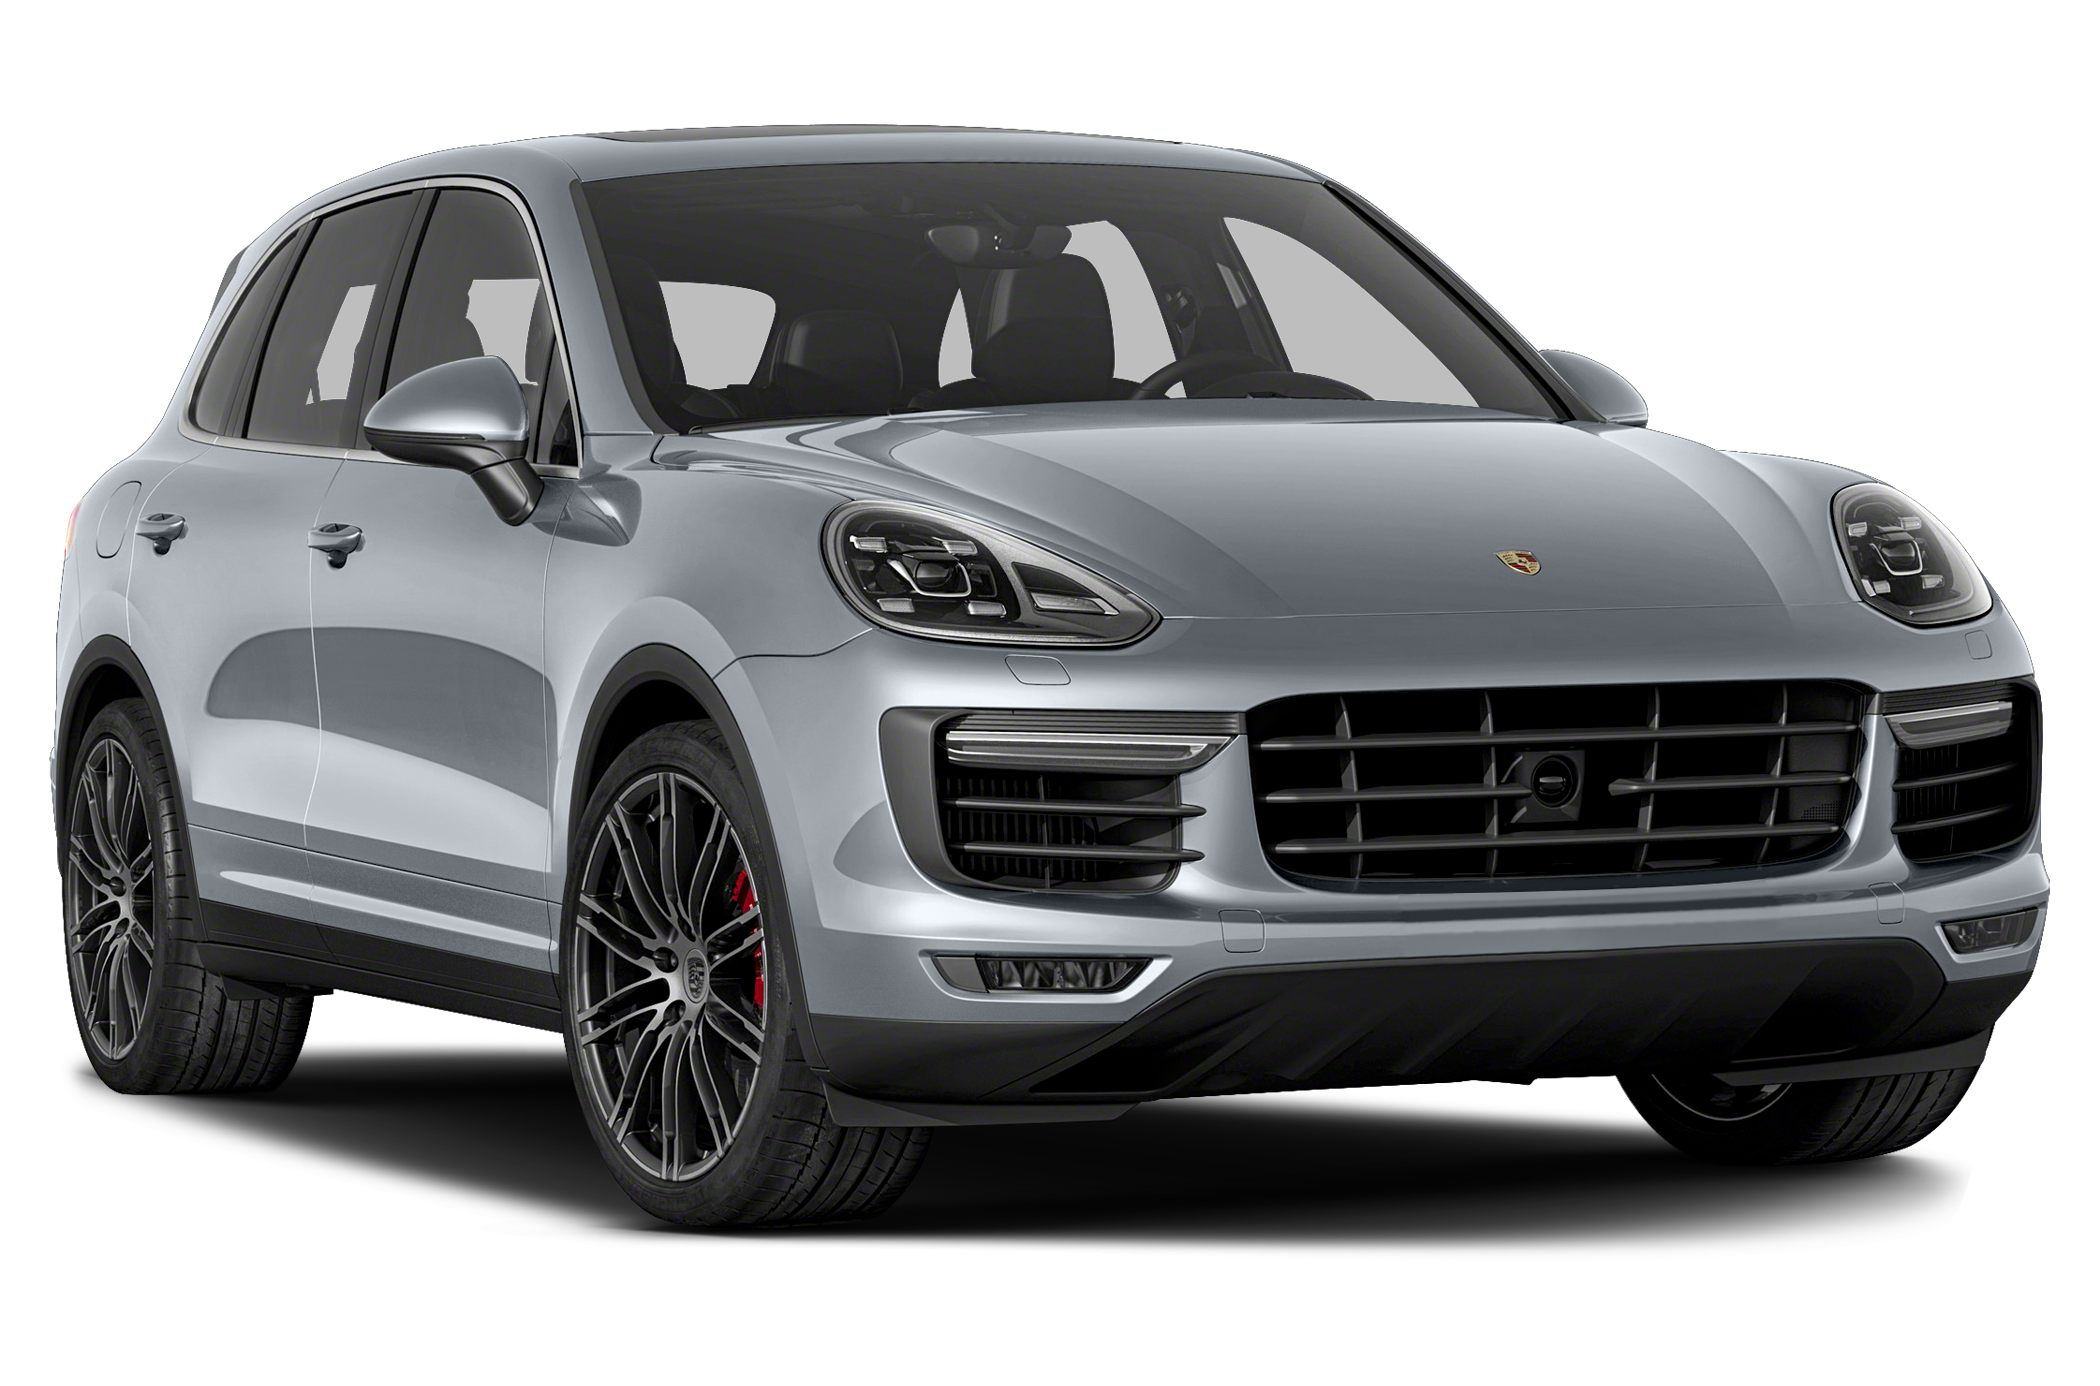 2015 Porsche Cayenne S SUV for sale in San Angelo for $0 with 0 miles